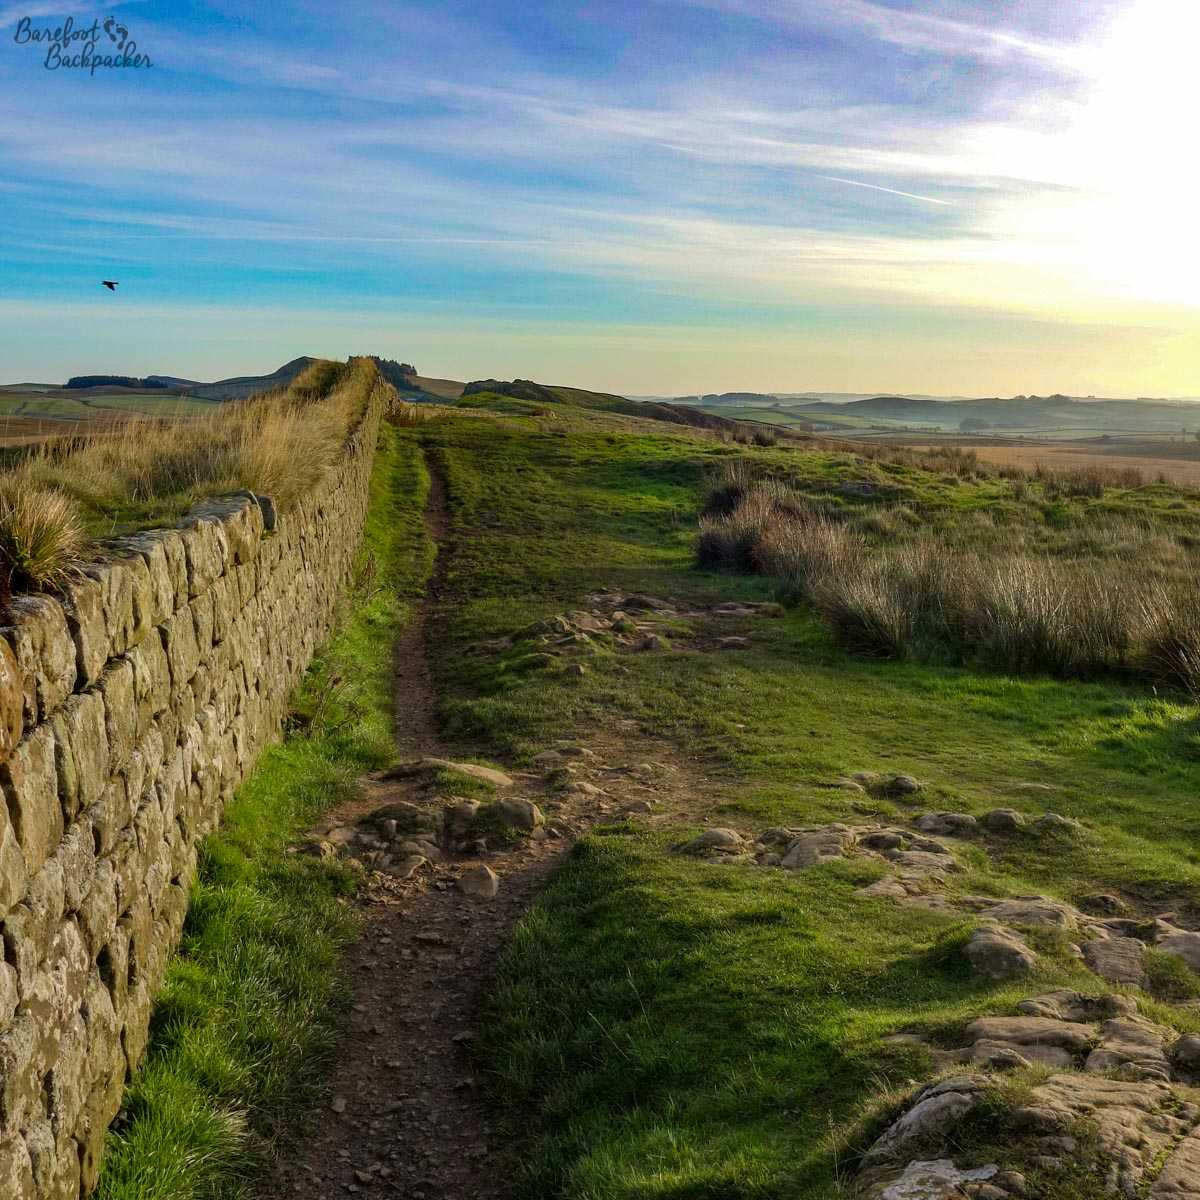 Hadrian's Wall, near Housesteads. Pic taken October 2017.